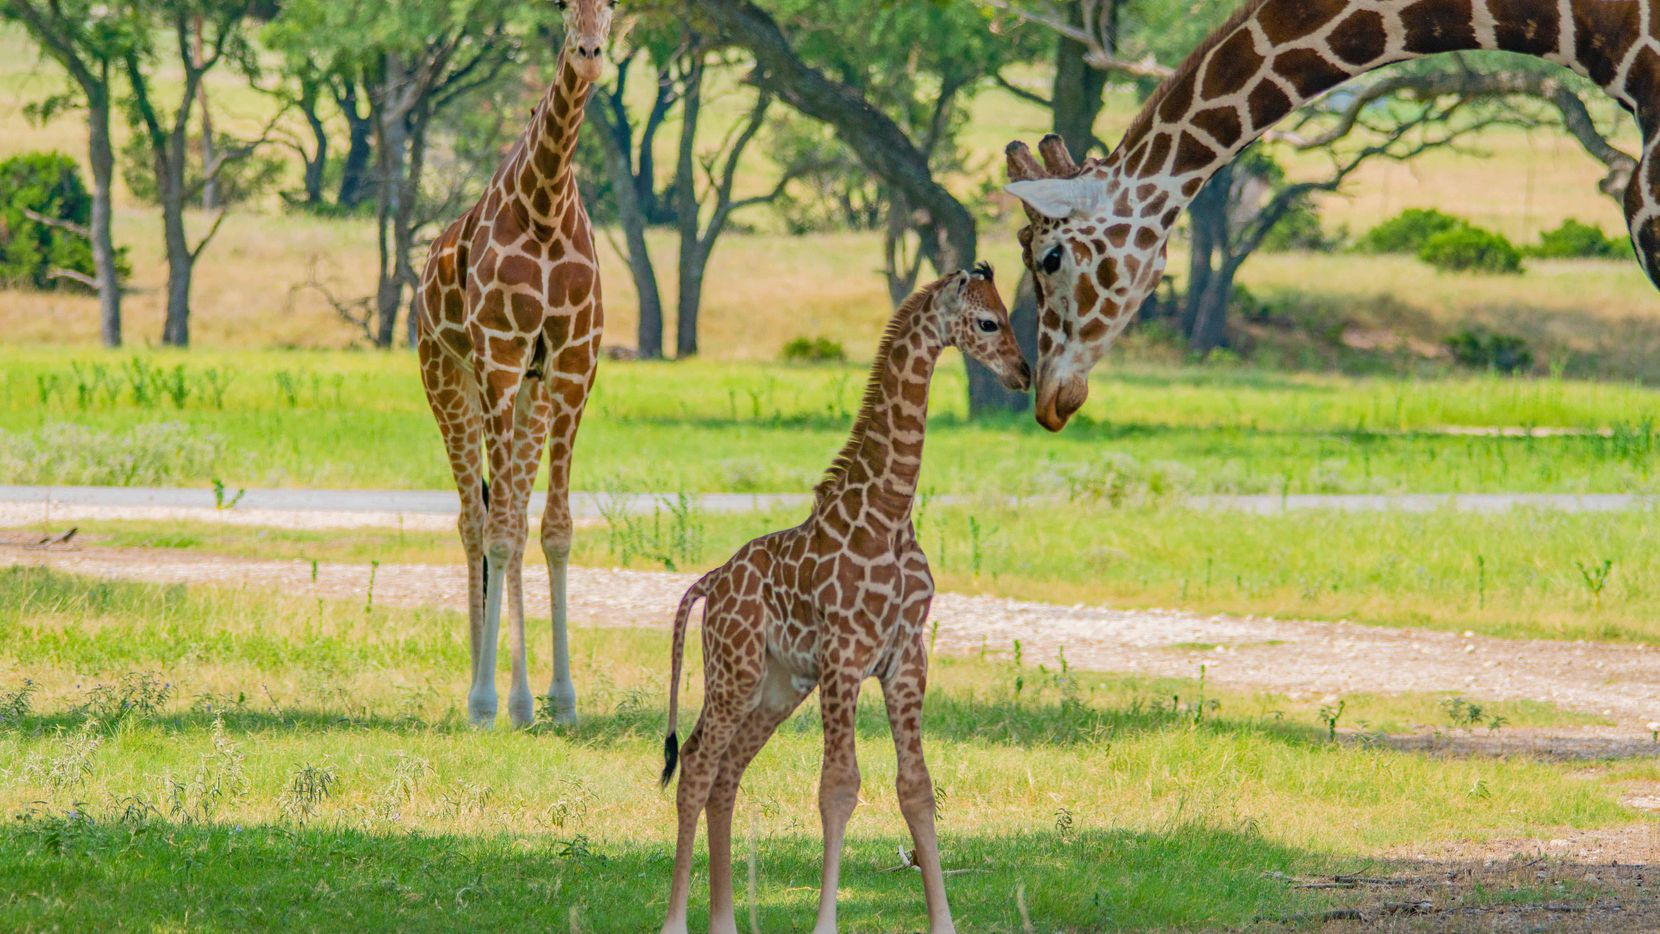 The Fossil Rim Wildlife Center in Glen Rose welcomed its 12th giraffe to the herd on July 20. The calf was born to mother Nettie and father Mosi.